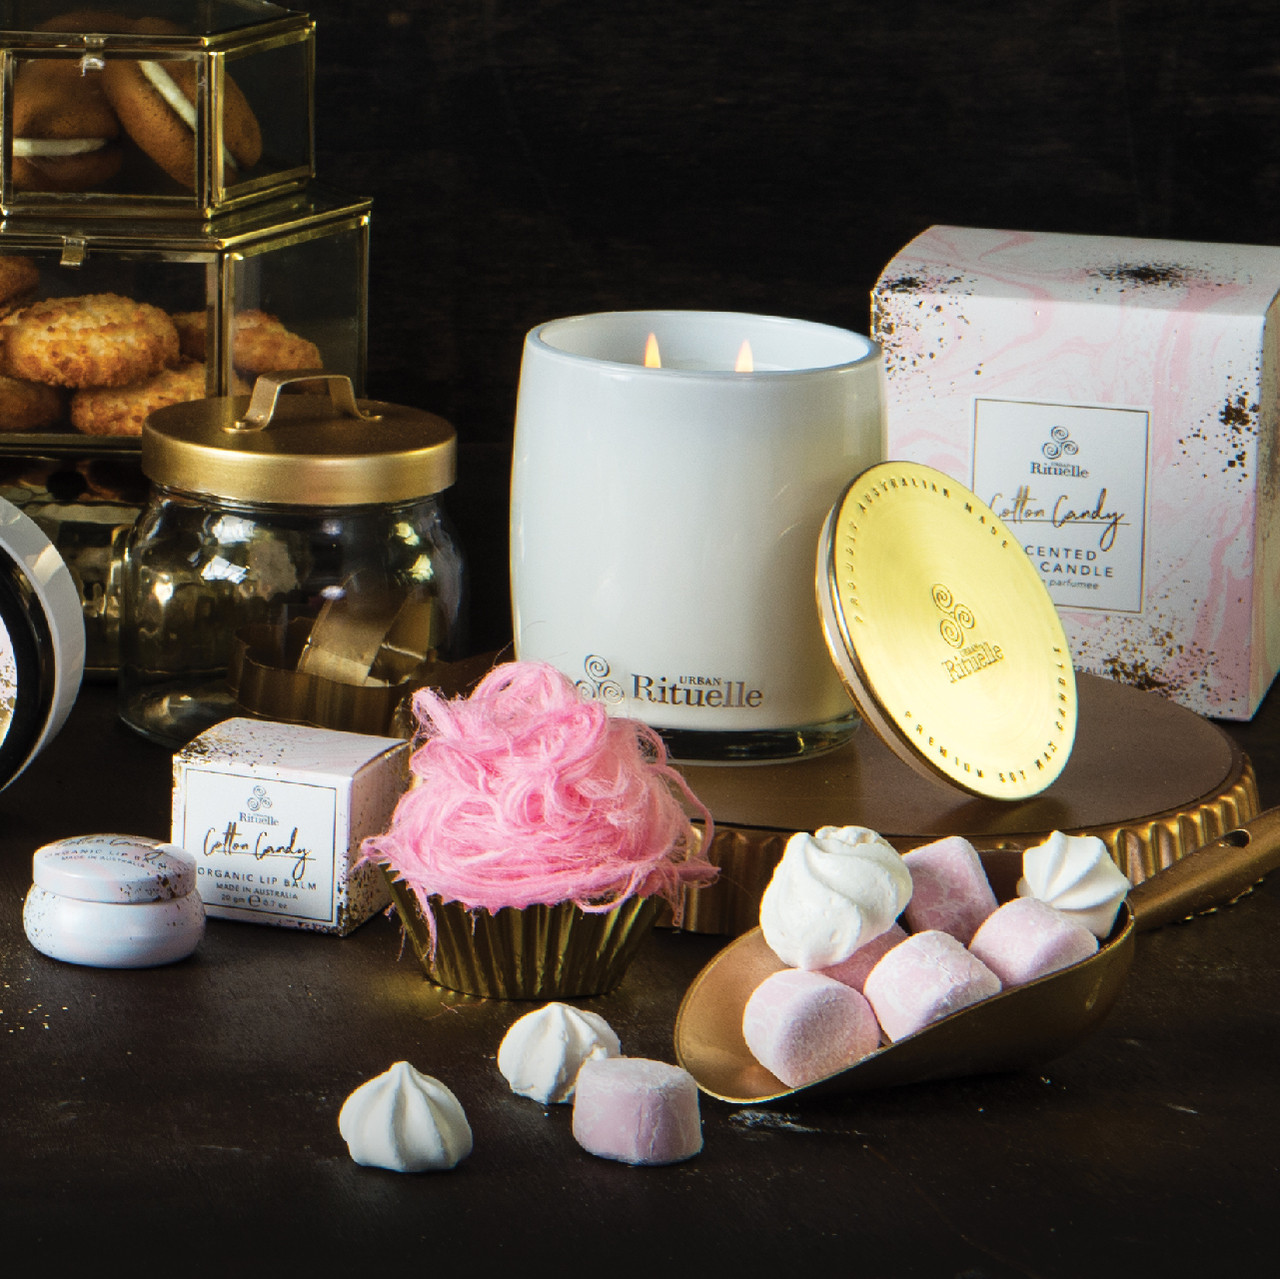 Sweet Treats - Cotton Candy - Scented Soy Candle - Urban Rituelle